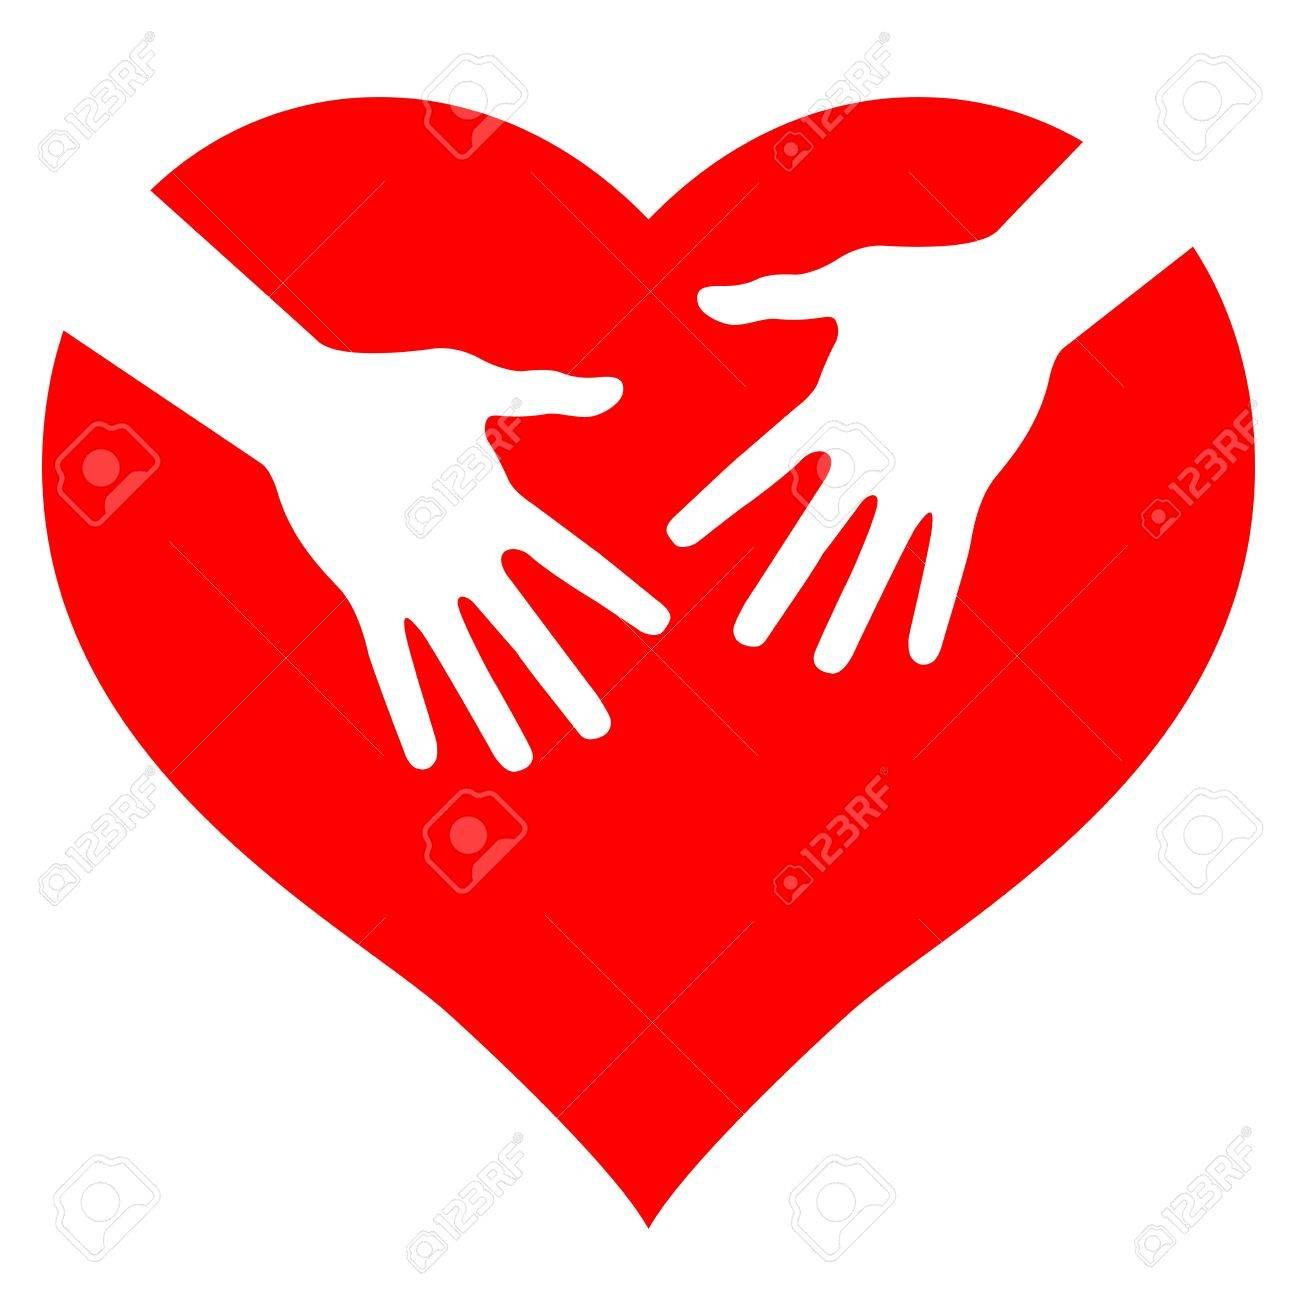 Hands on heart, abstract illustration for design Stock Vector - 13519171